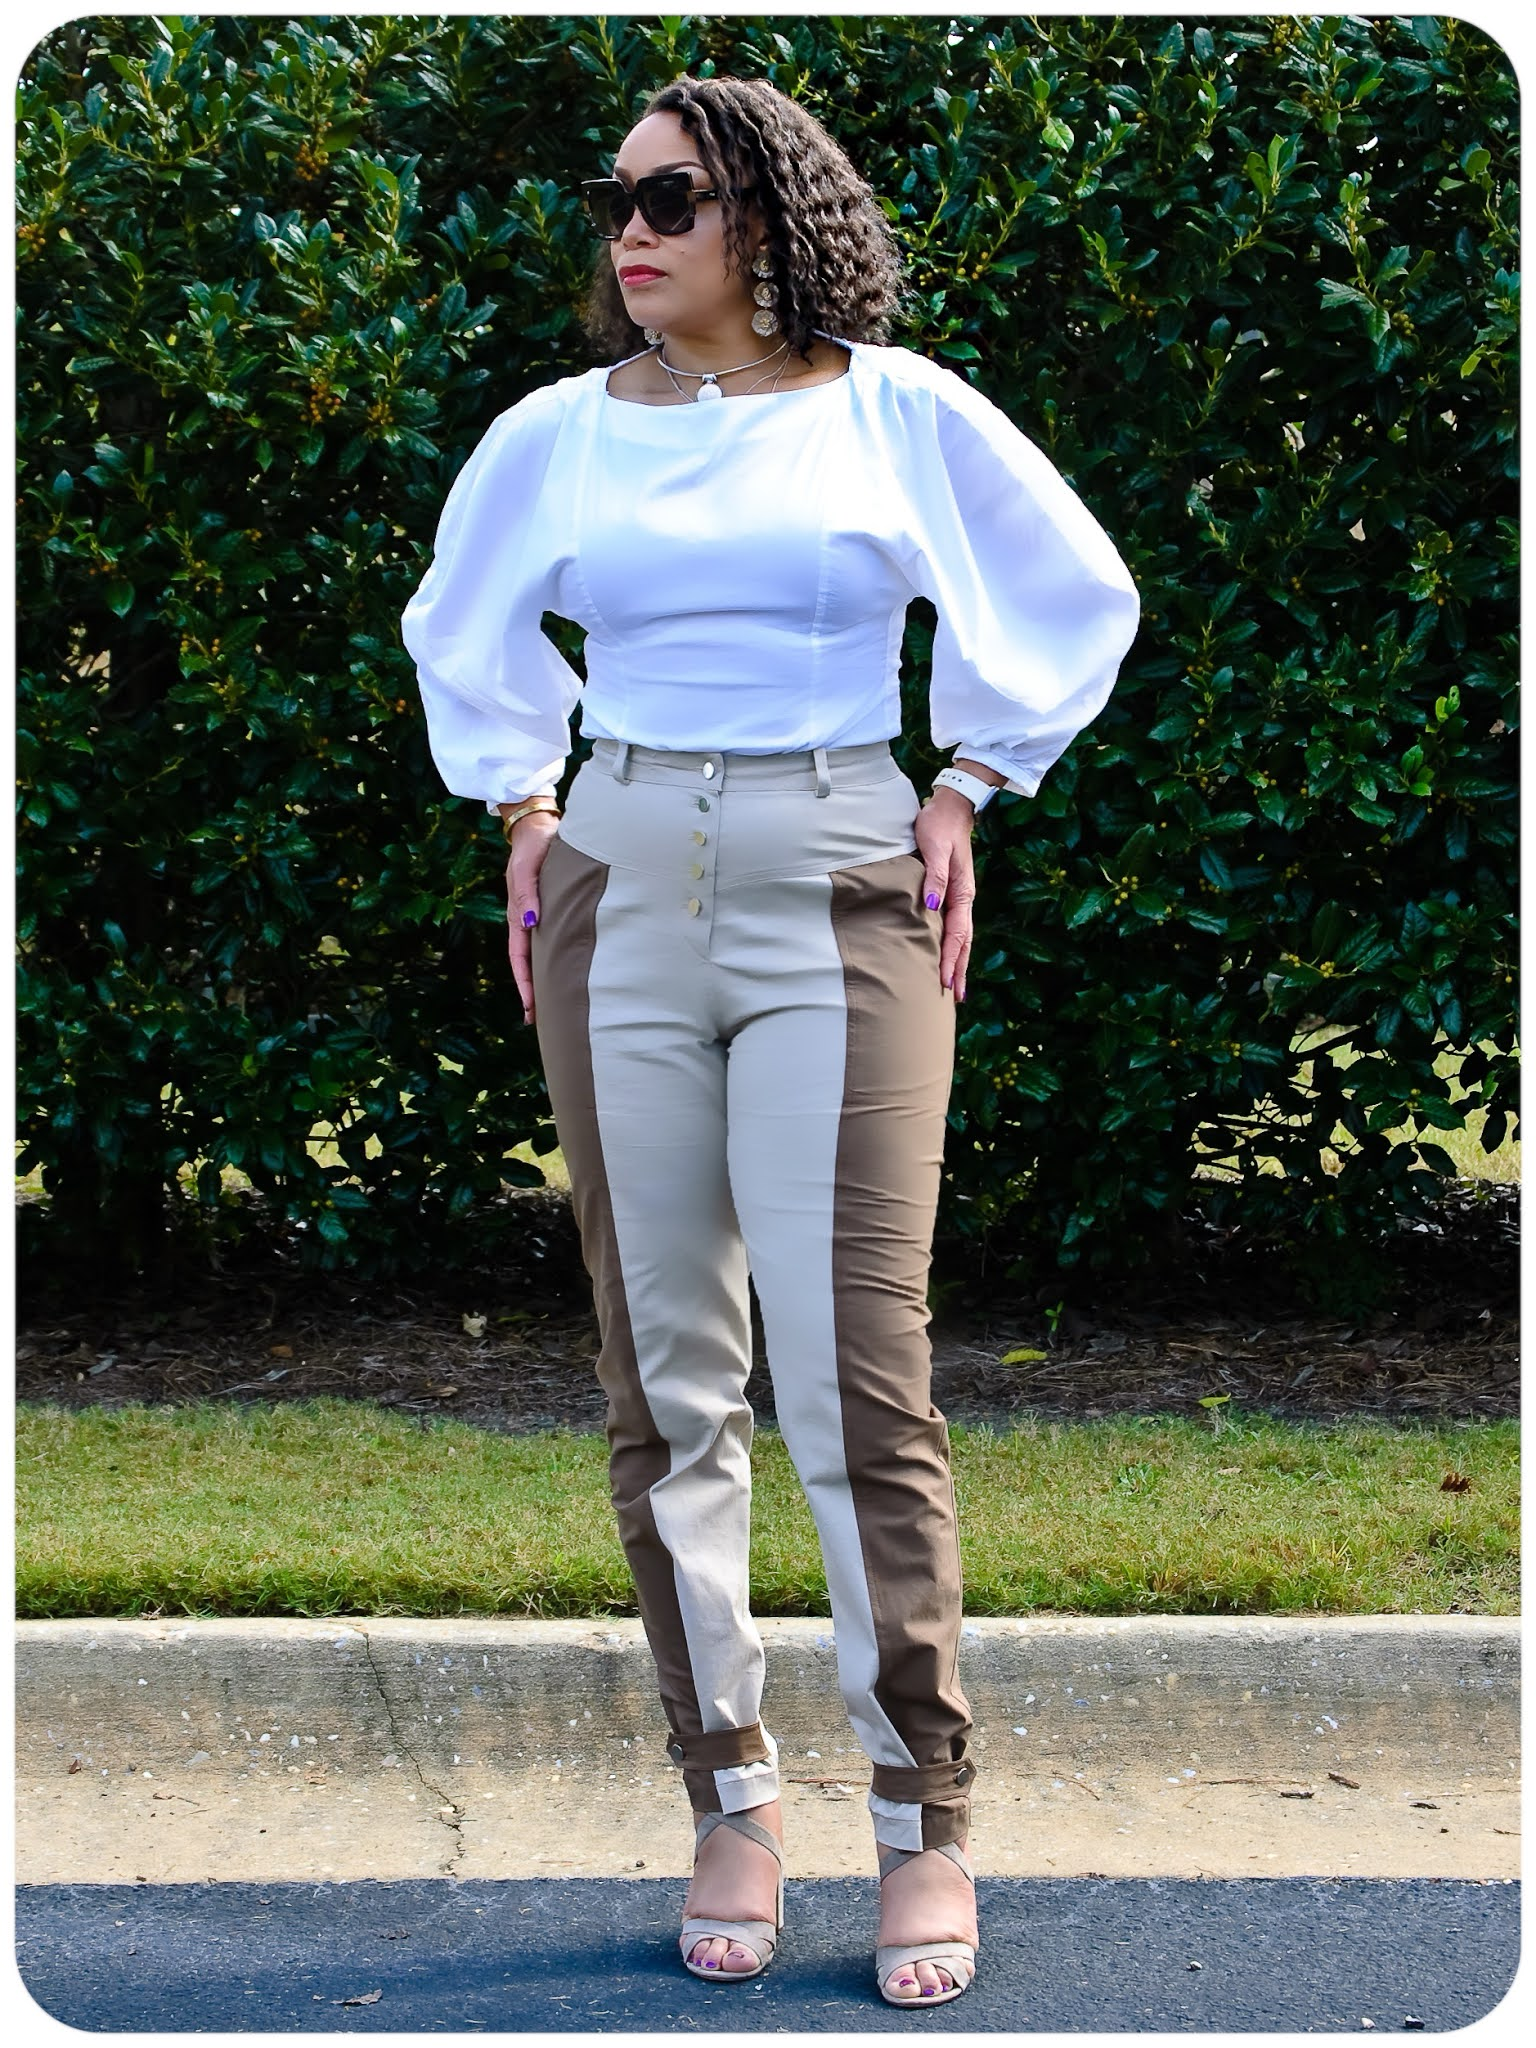 McCall's 8045 - Colorblock Tapered Utility Pants - Erica Bunker DIY Style!